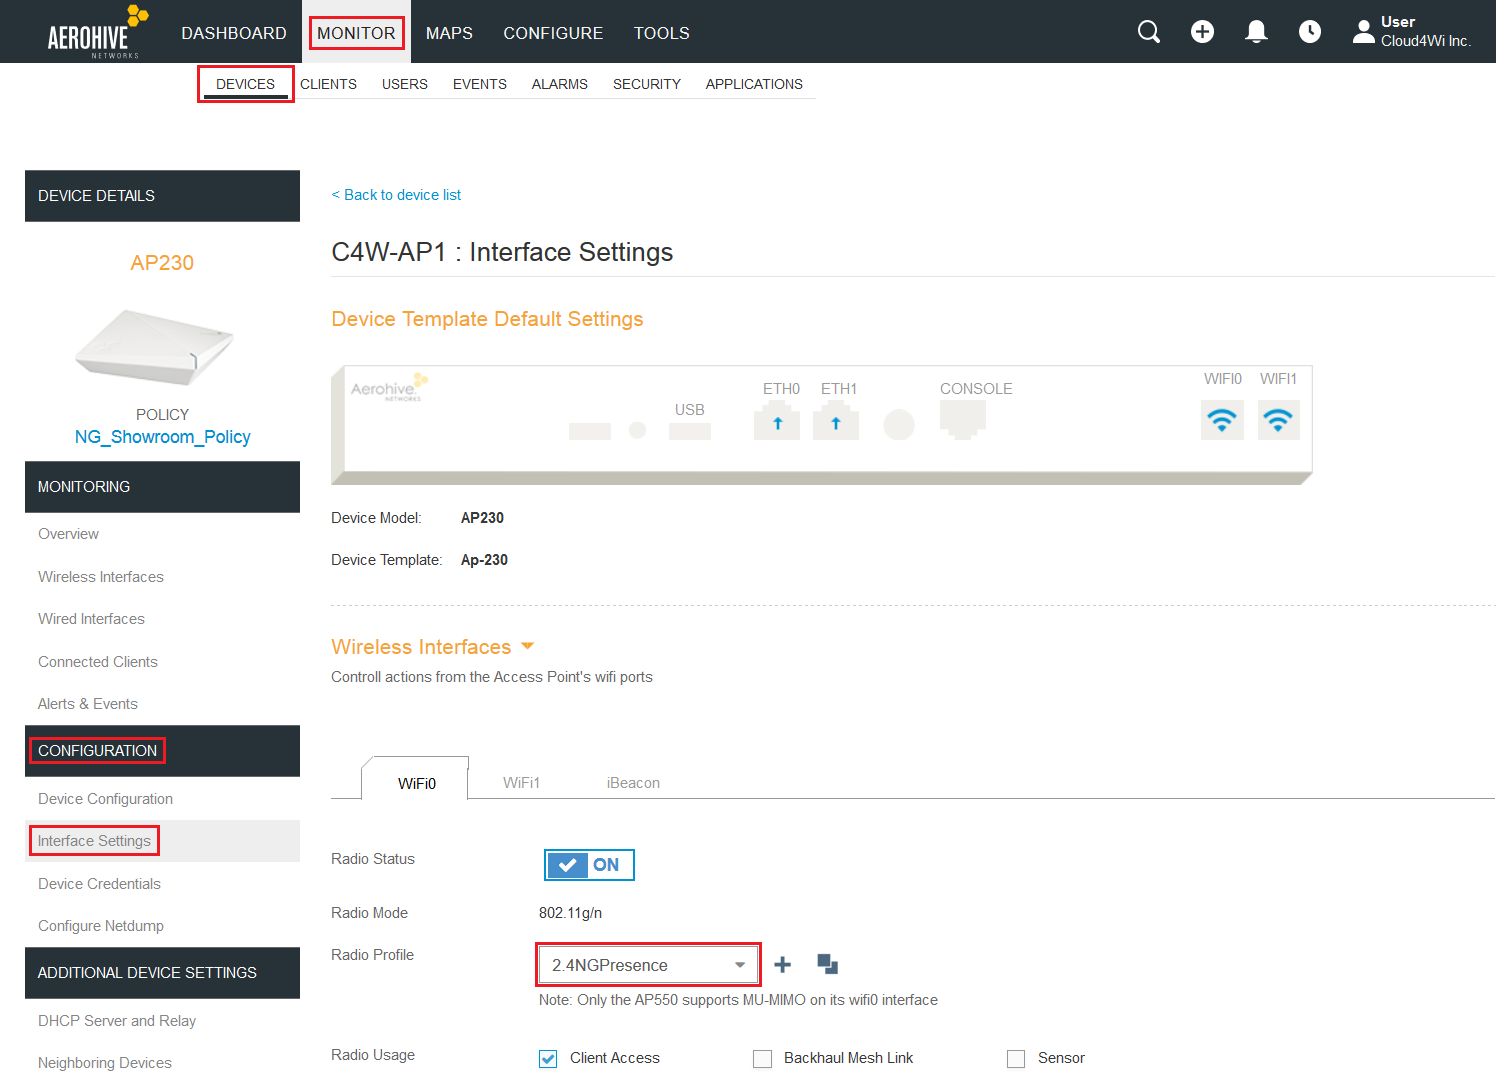 Configuring Aerohive for Spaces – Help Center